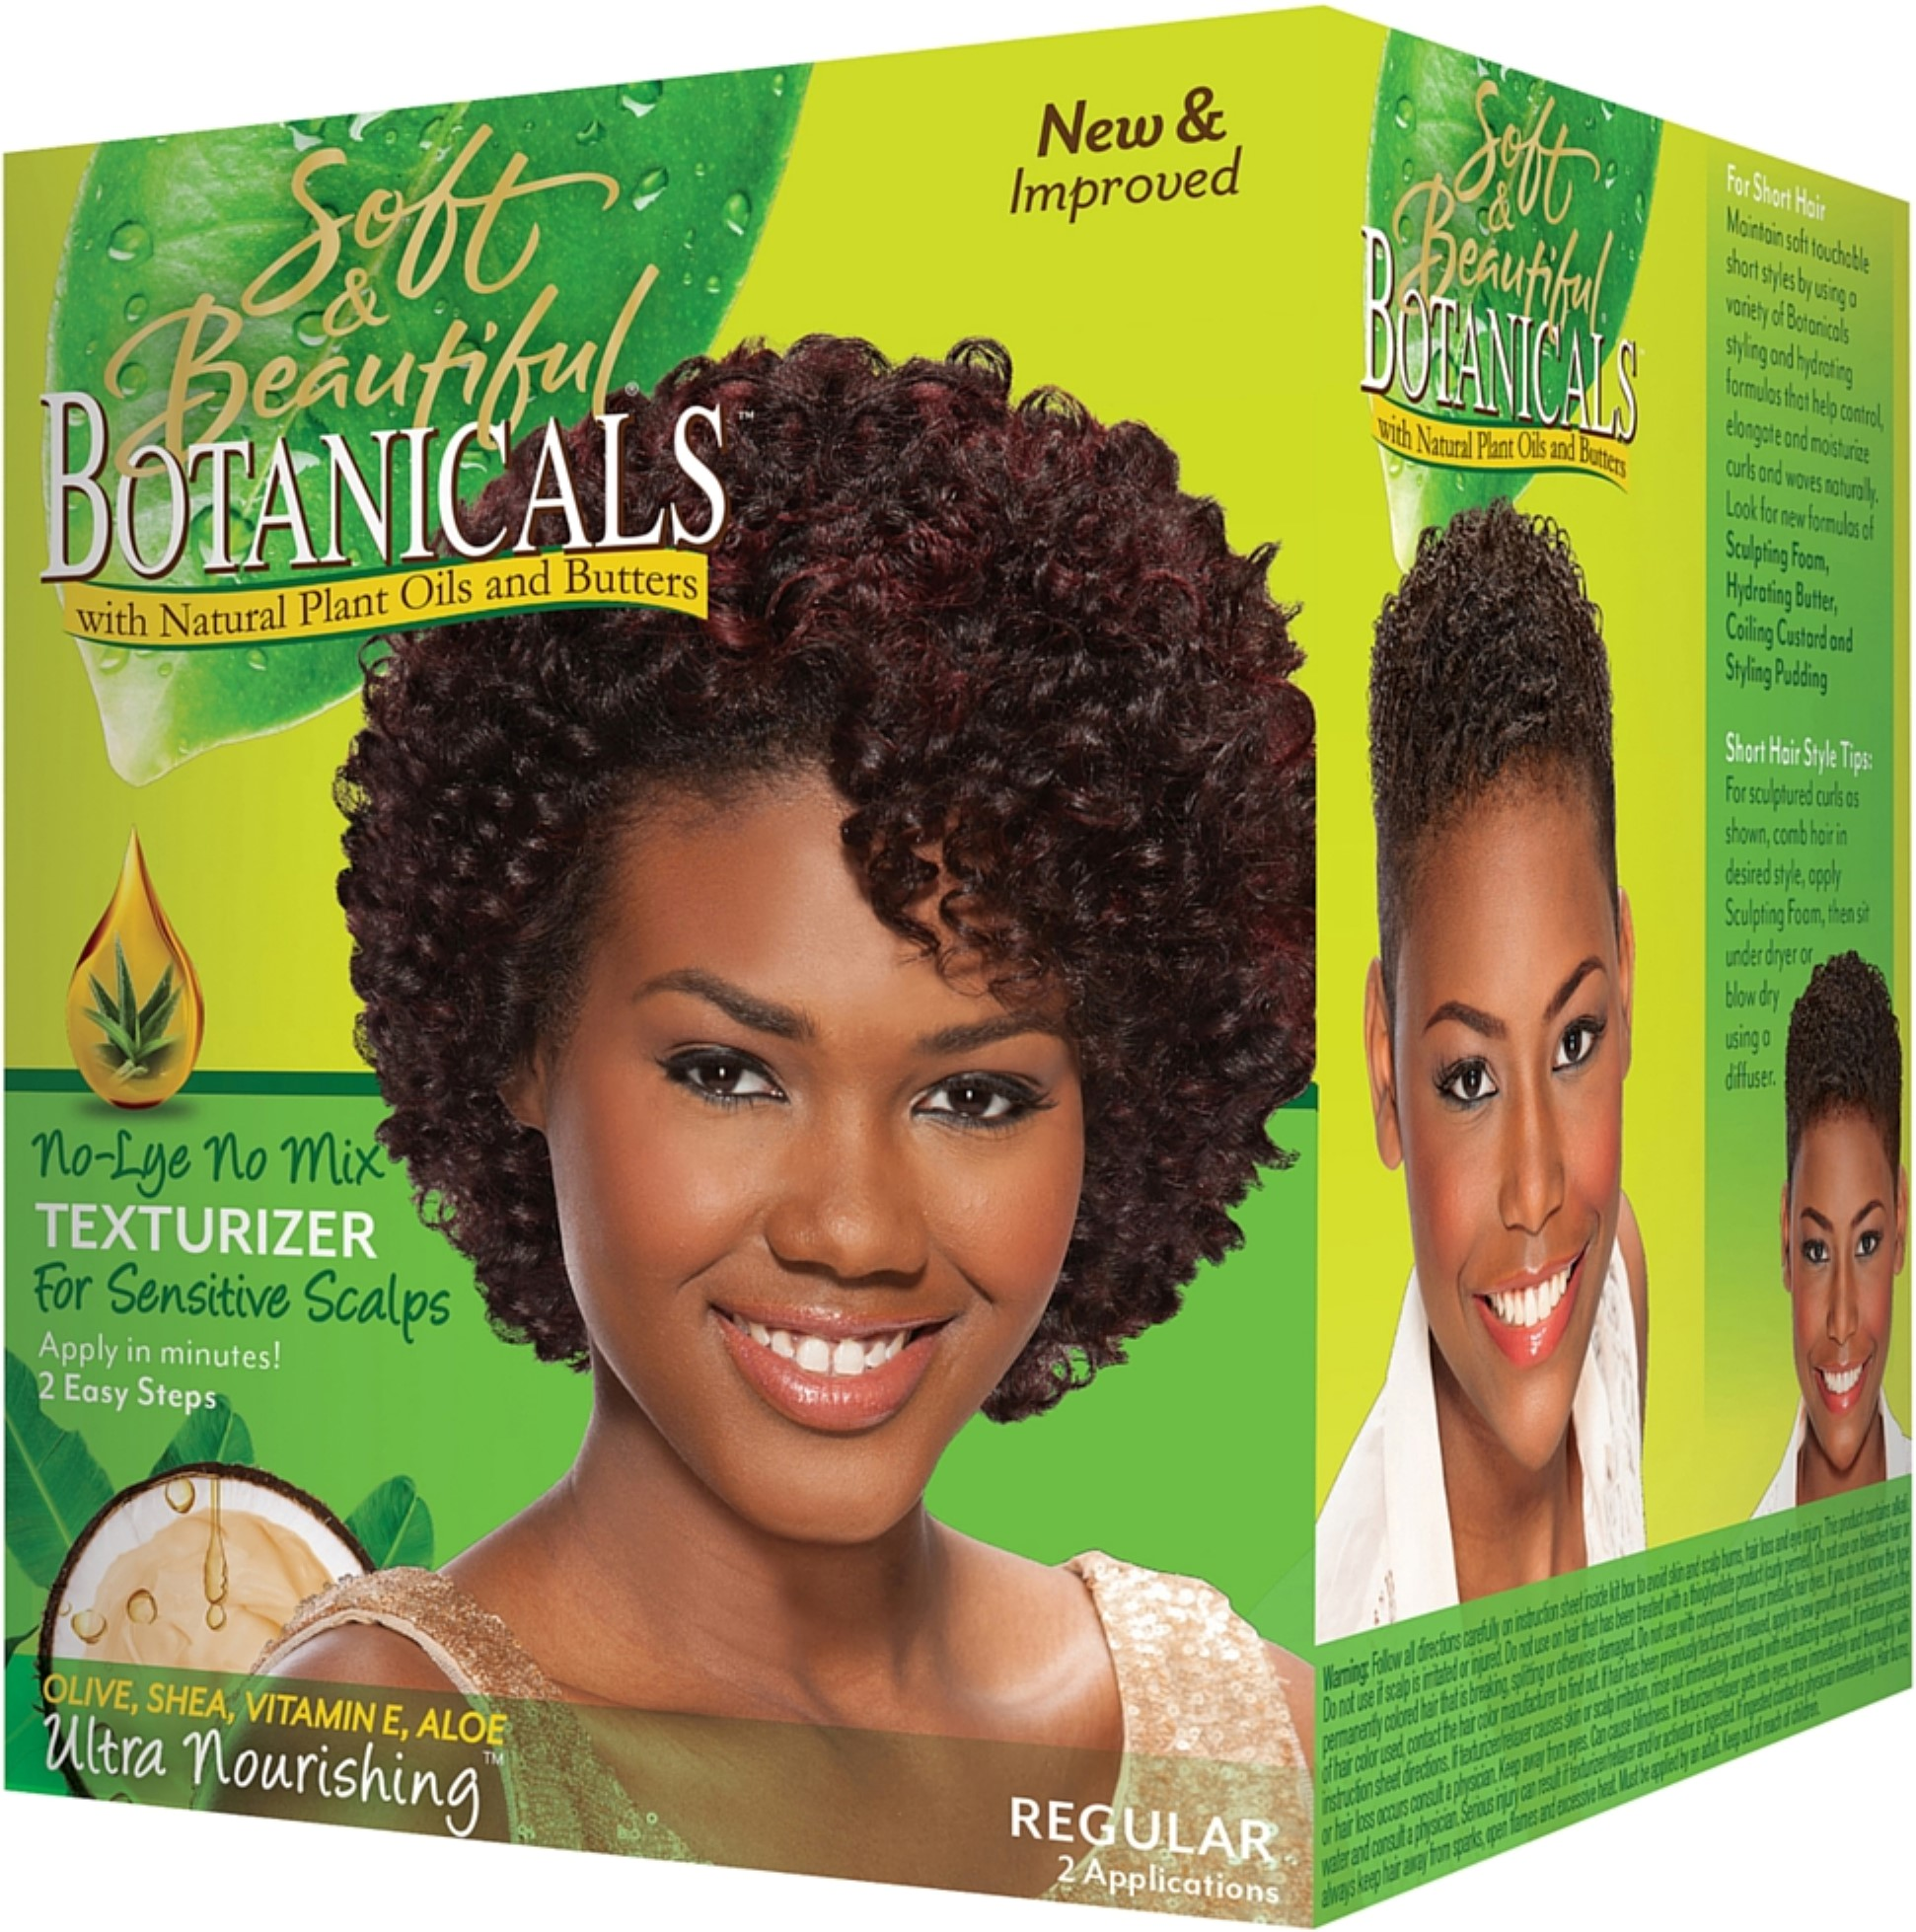 Soft & Beautiful Botanicals Regular No-Lye No Mix Texturizer for Sensitive Scalps Box